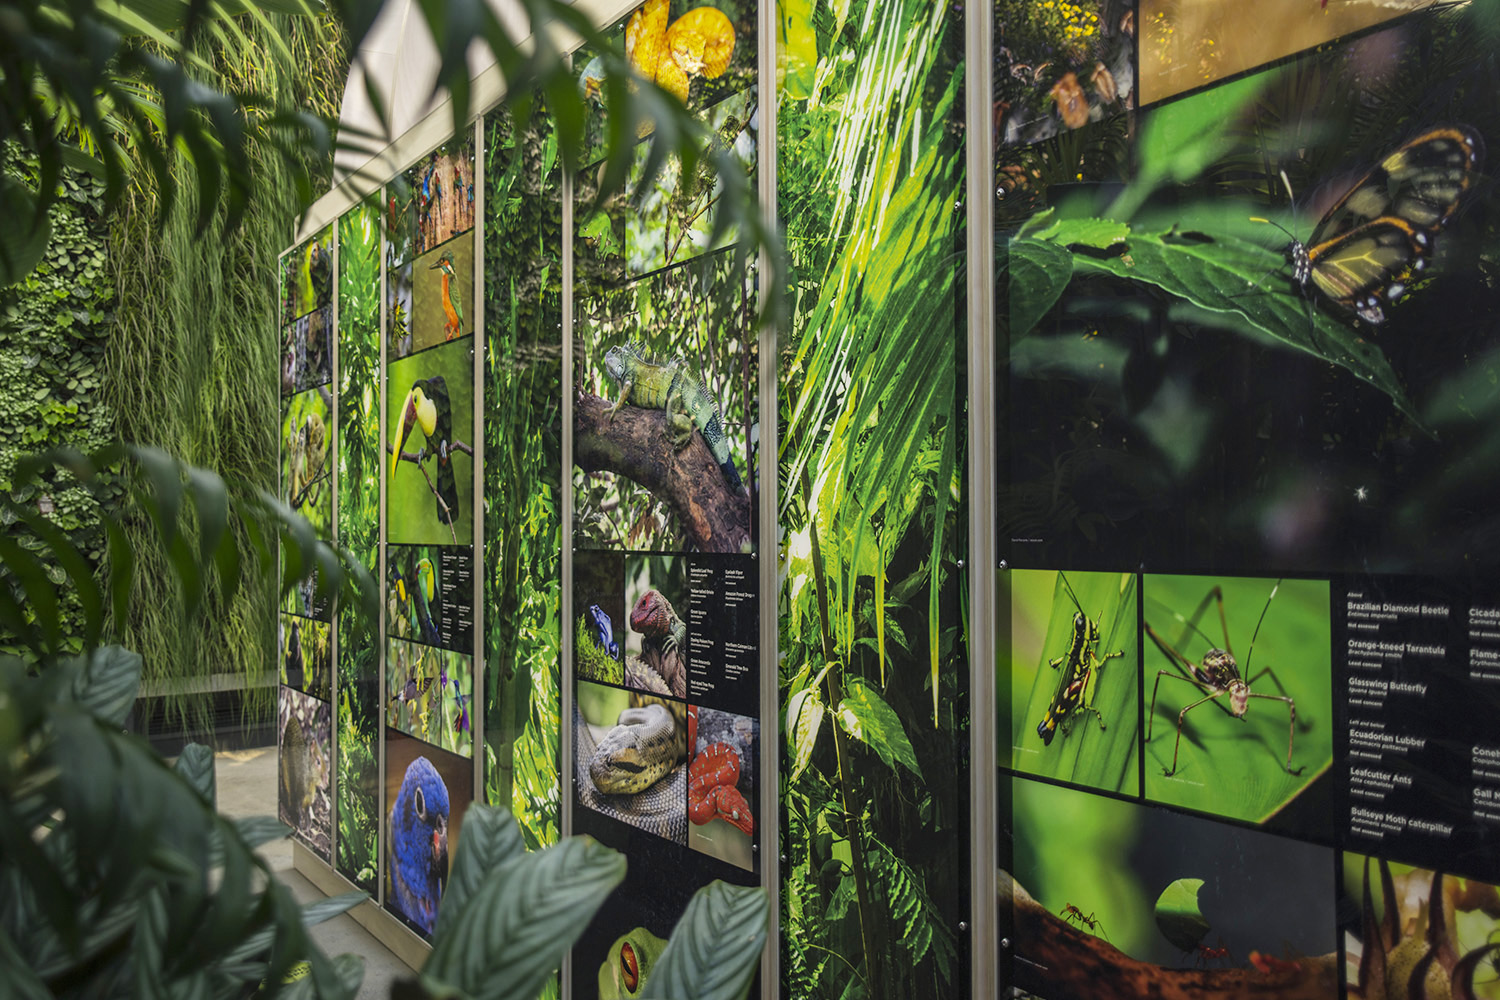 The exhibition explored all aspects of chocolate: the ecology of the cacao plant, the history of chocolate and its global spread, production methods and its physiological effects on the body.